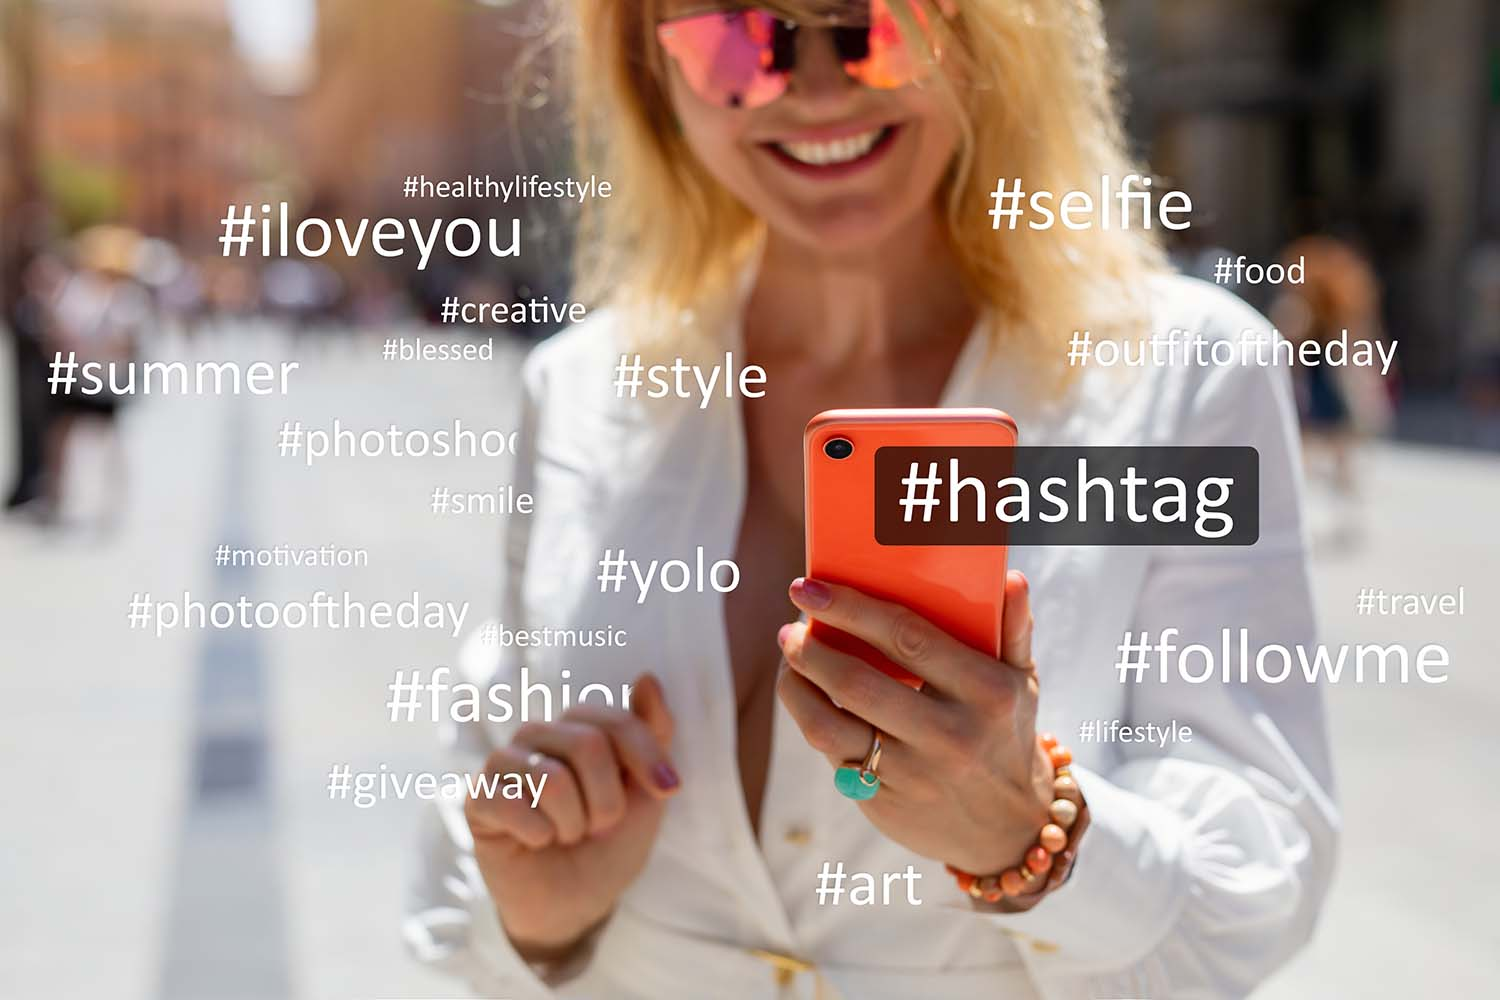 Instagram: Hashtags can increase your reach